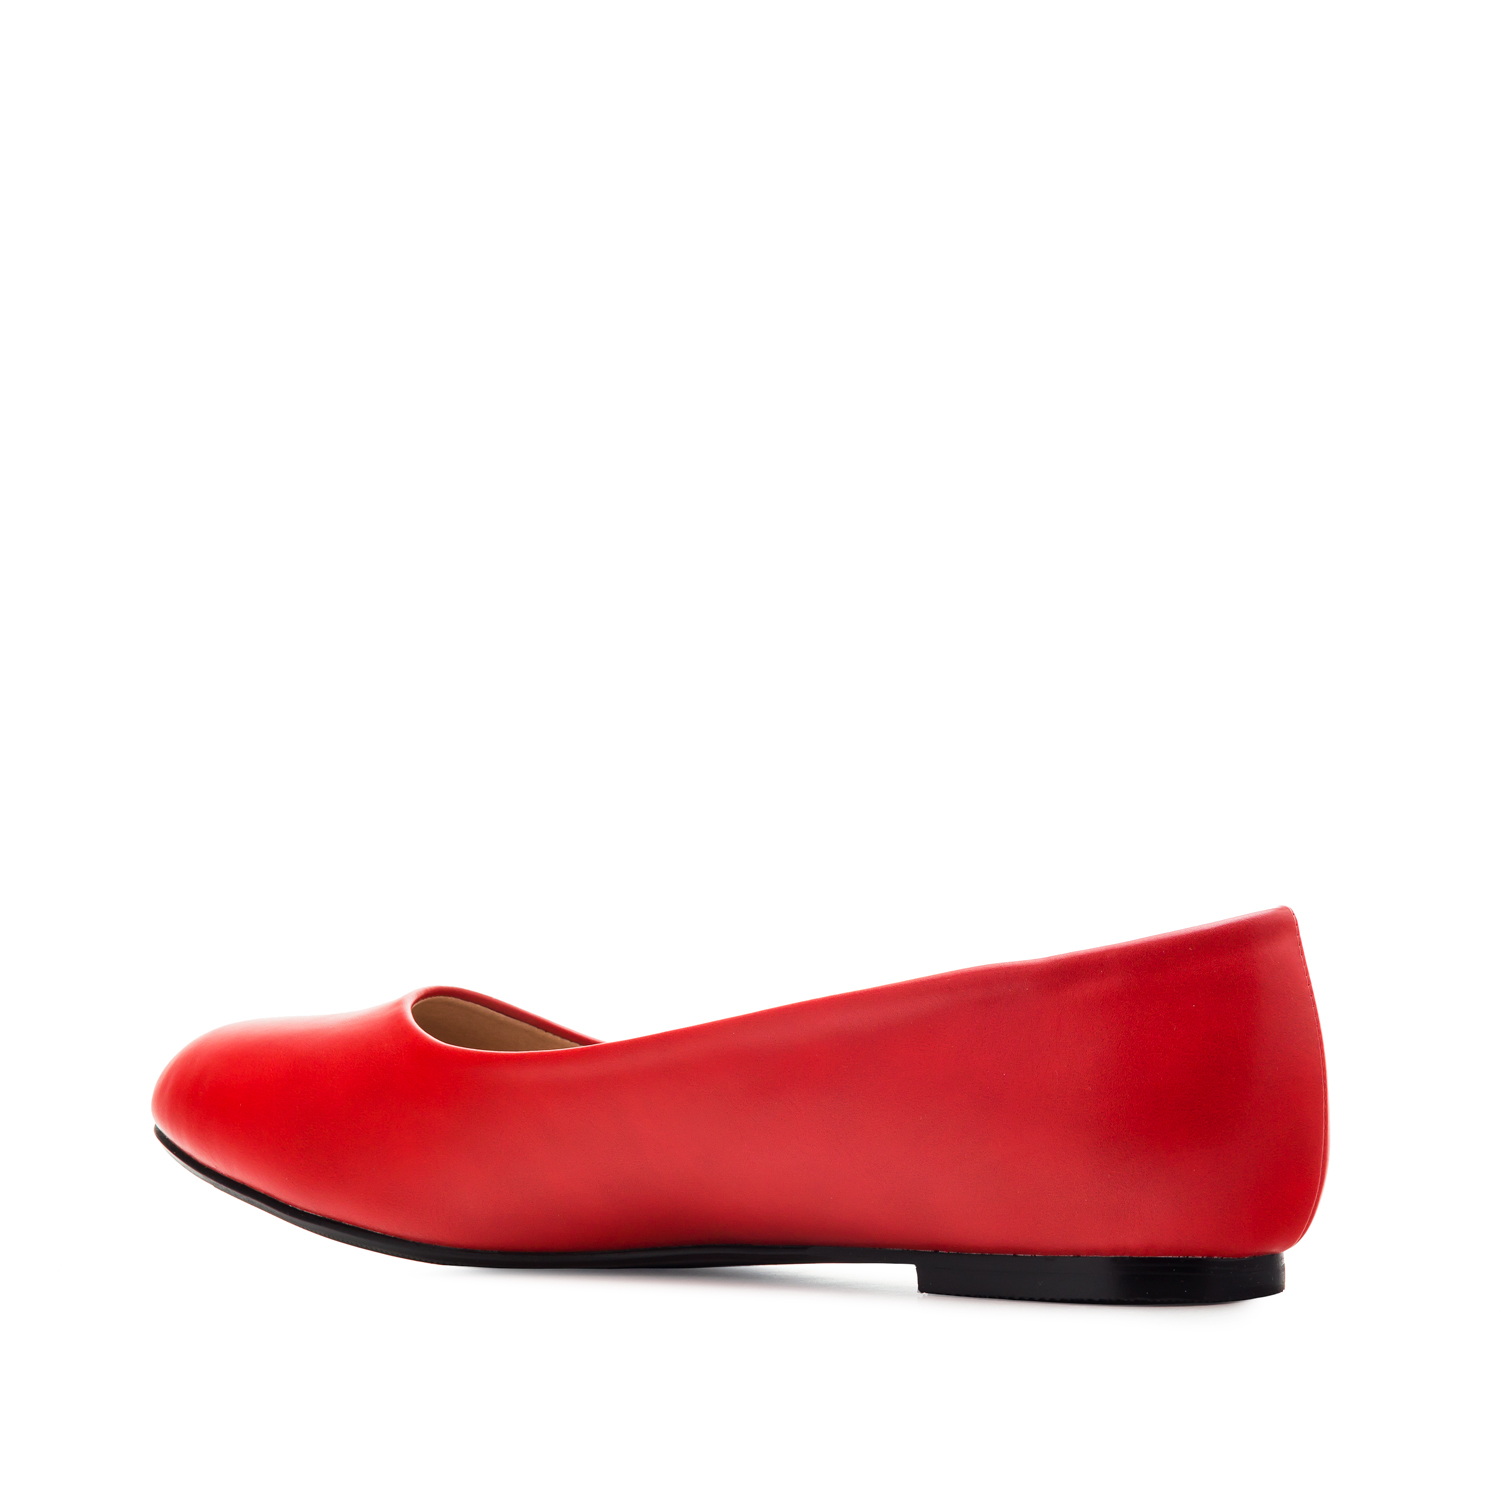 Plain Ballet Flats in Red faux Leather